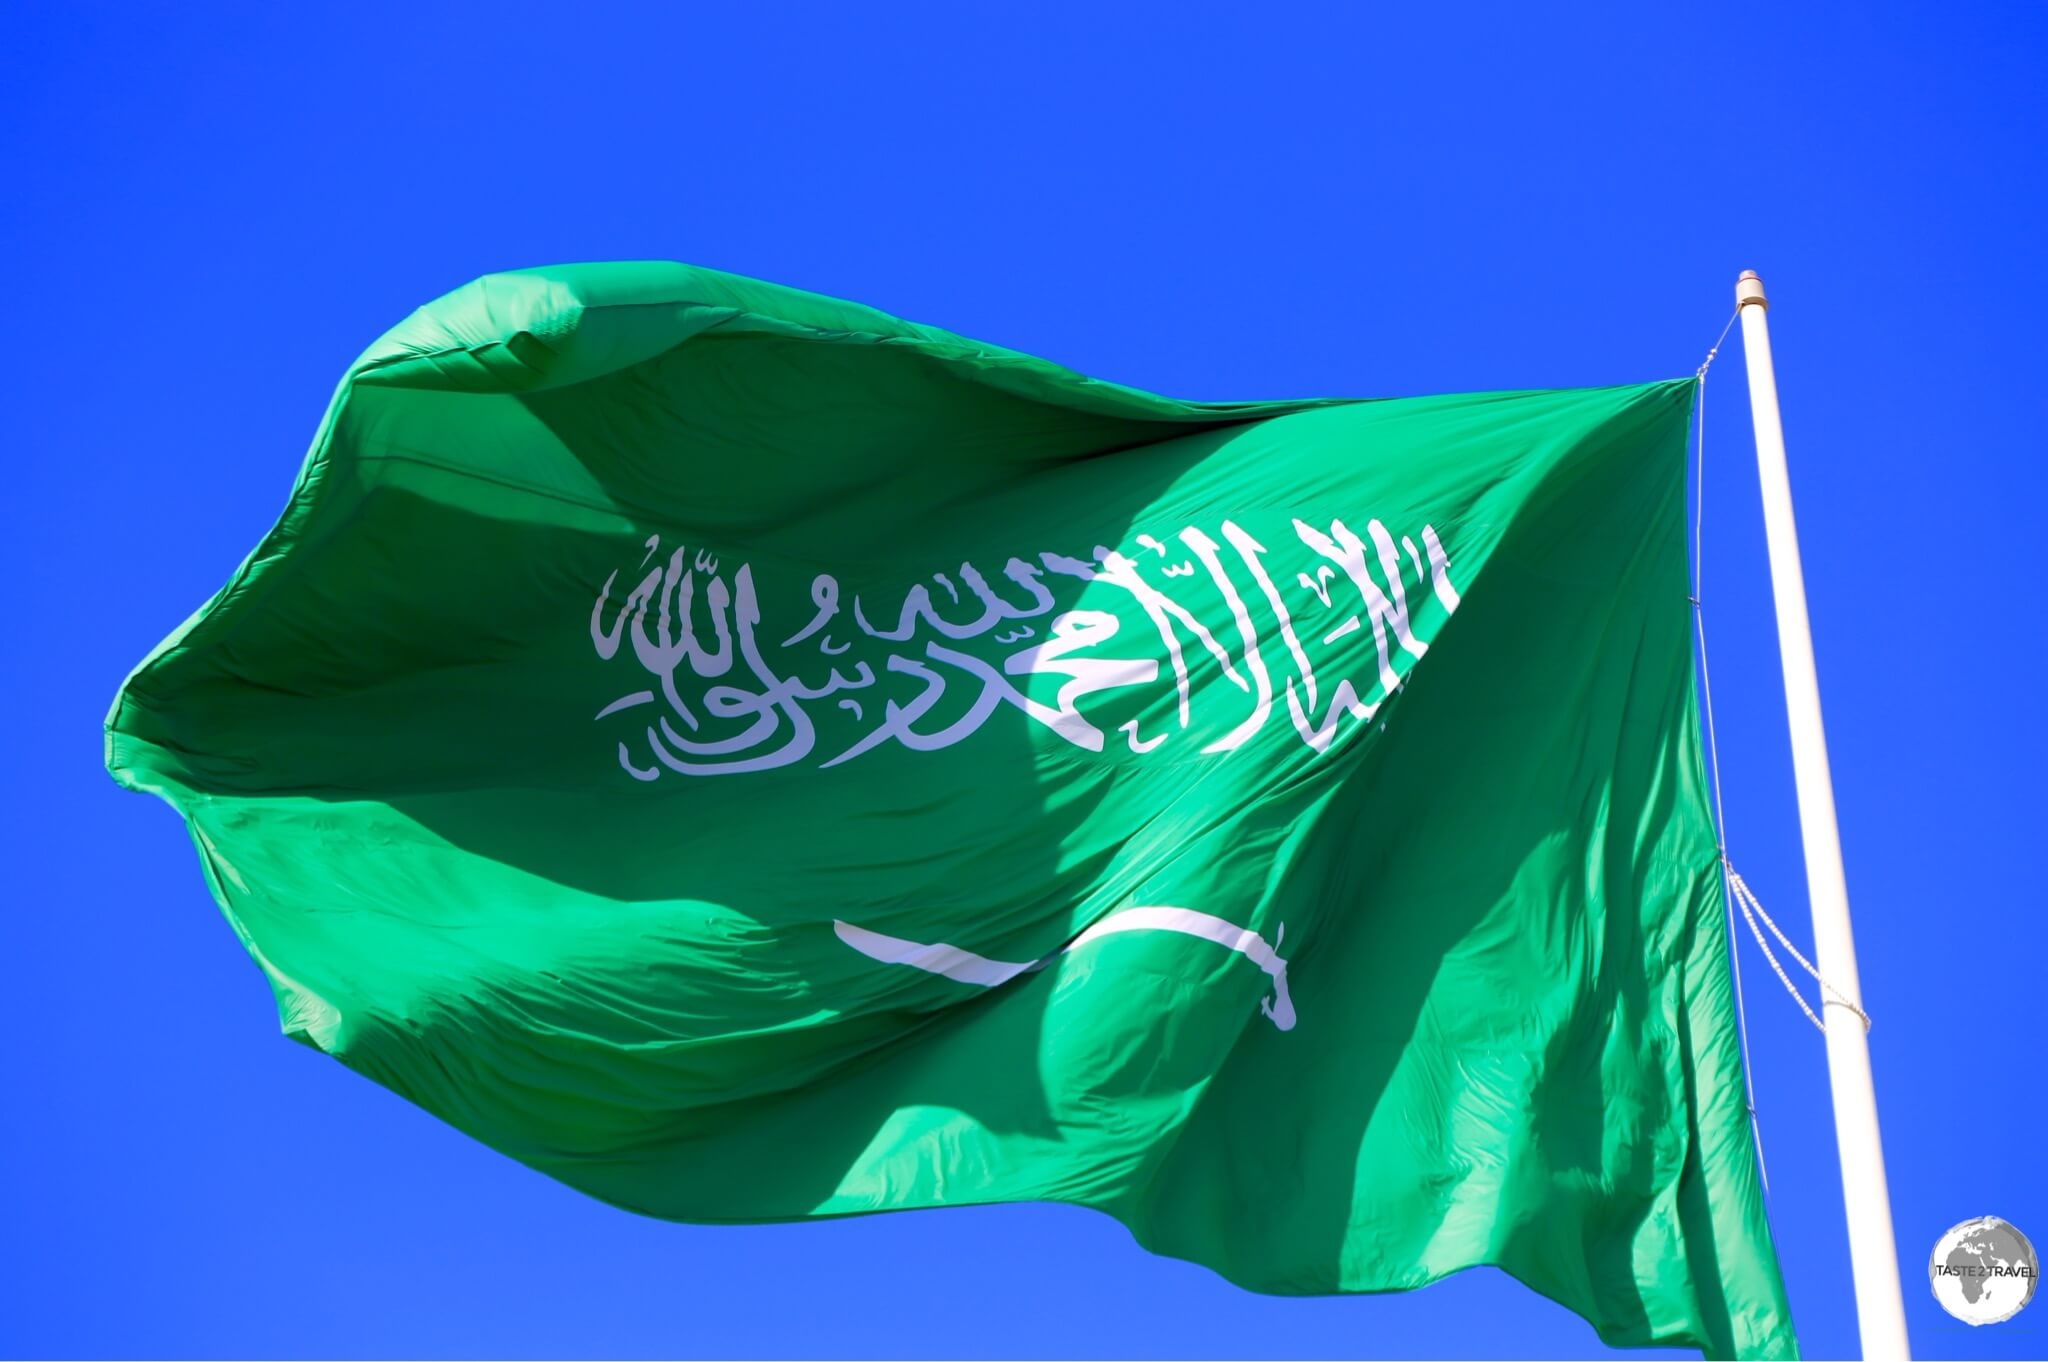 The flag of Saudi Arabia is always double-sided so that the 'shahada' reads correctly, from right to left, from either side.